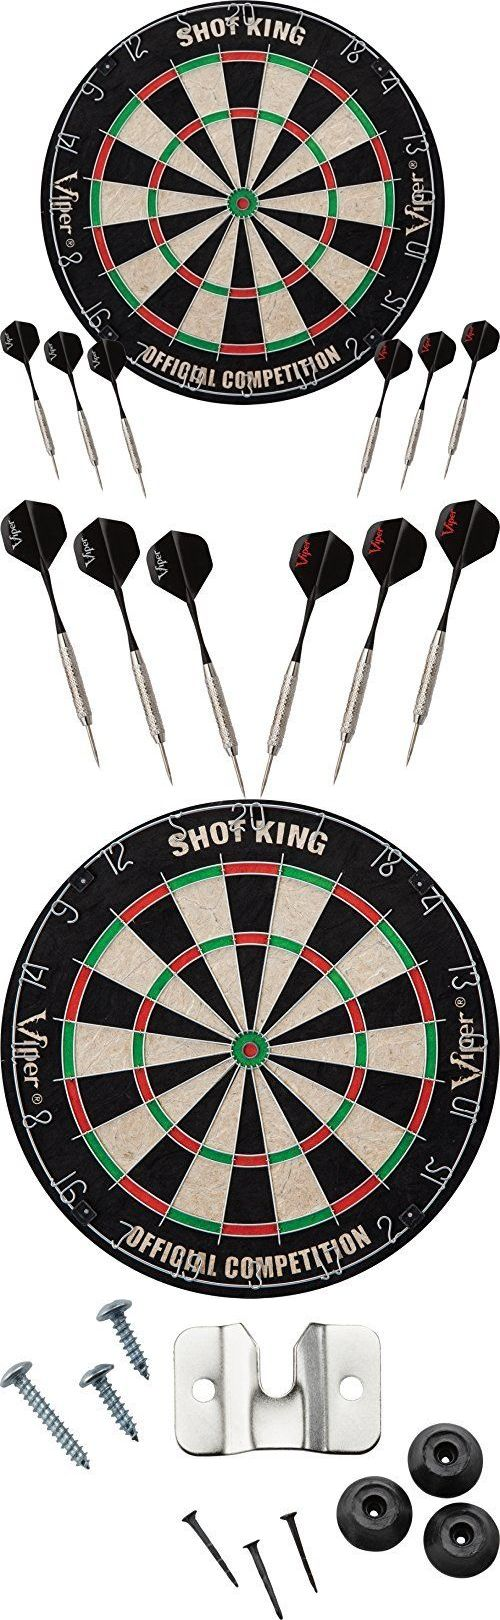 Dart Boards 72576: Shot King Sisal/Bristle Steel Tip Dartboard With 6 Darts By Viper BUY IT NOW ONLY: $47.98